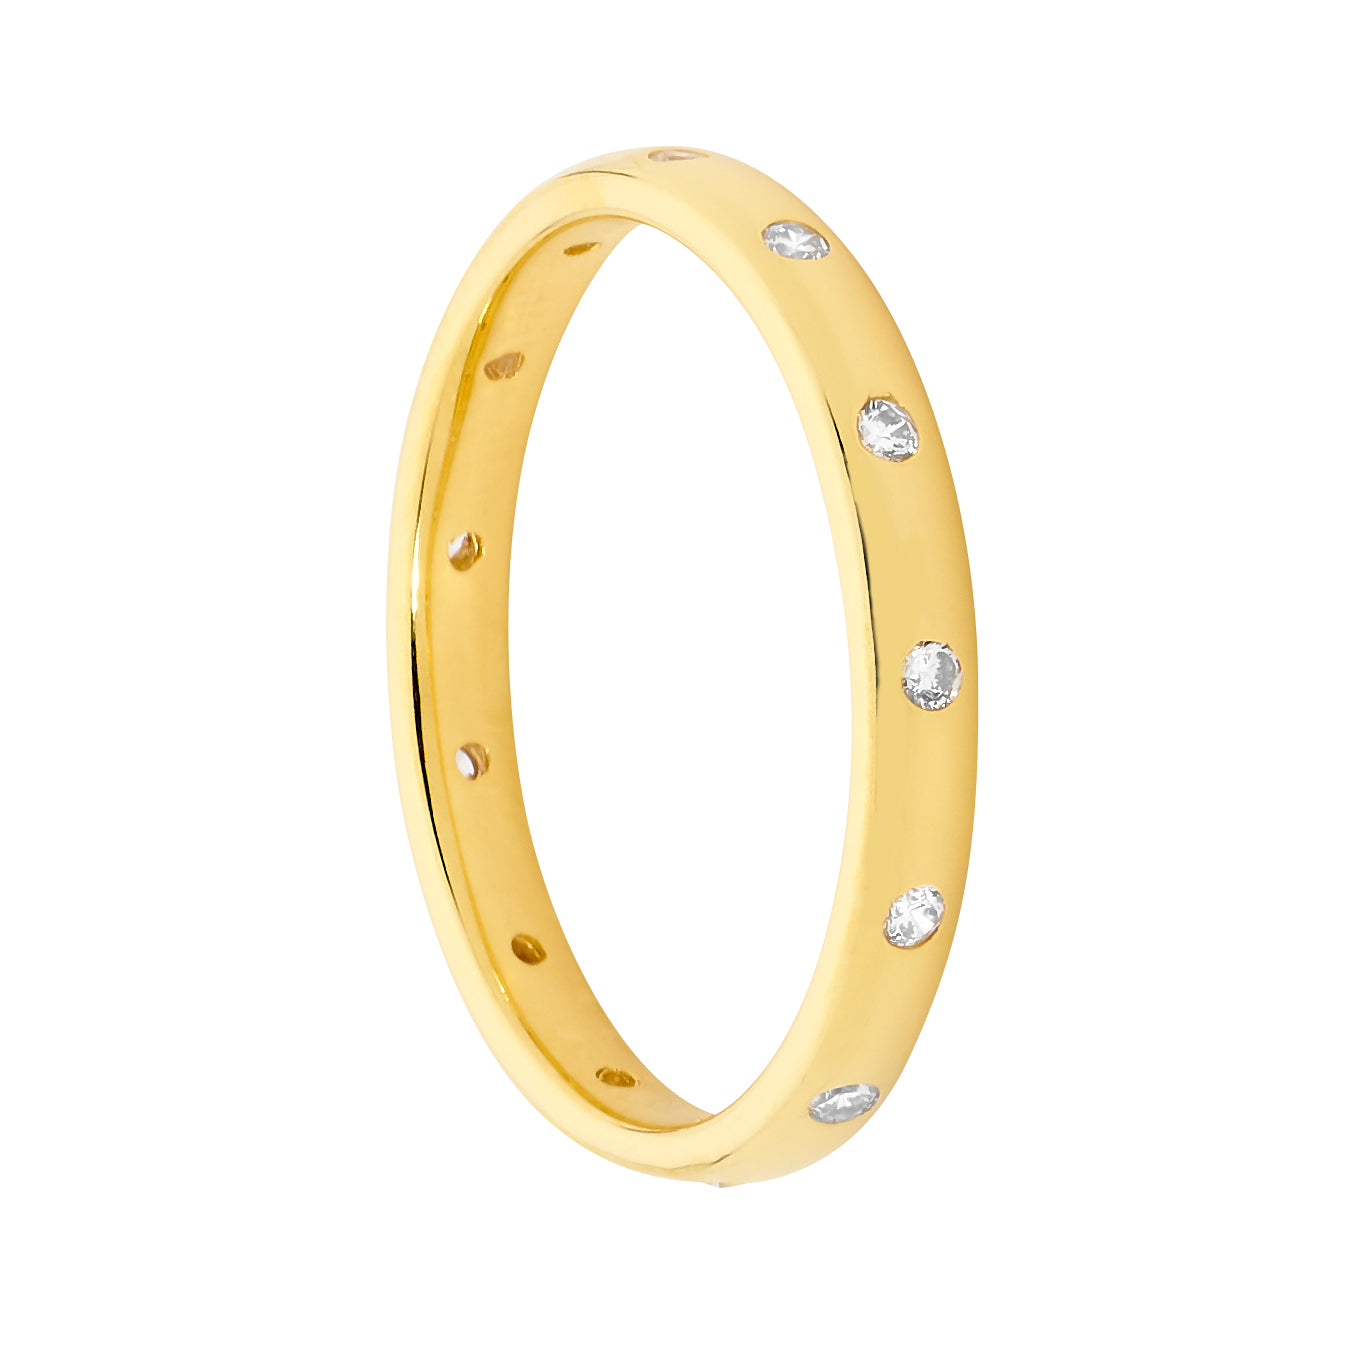 S/S WH CZ HAMMER SET ETERNITY RING W/ GOLD PLATING -